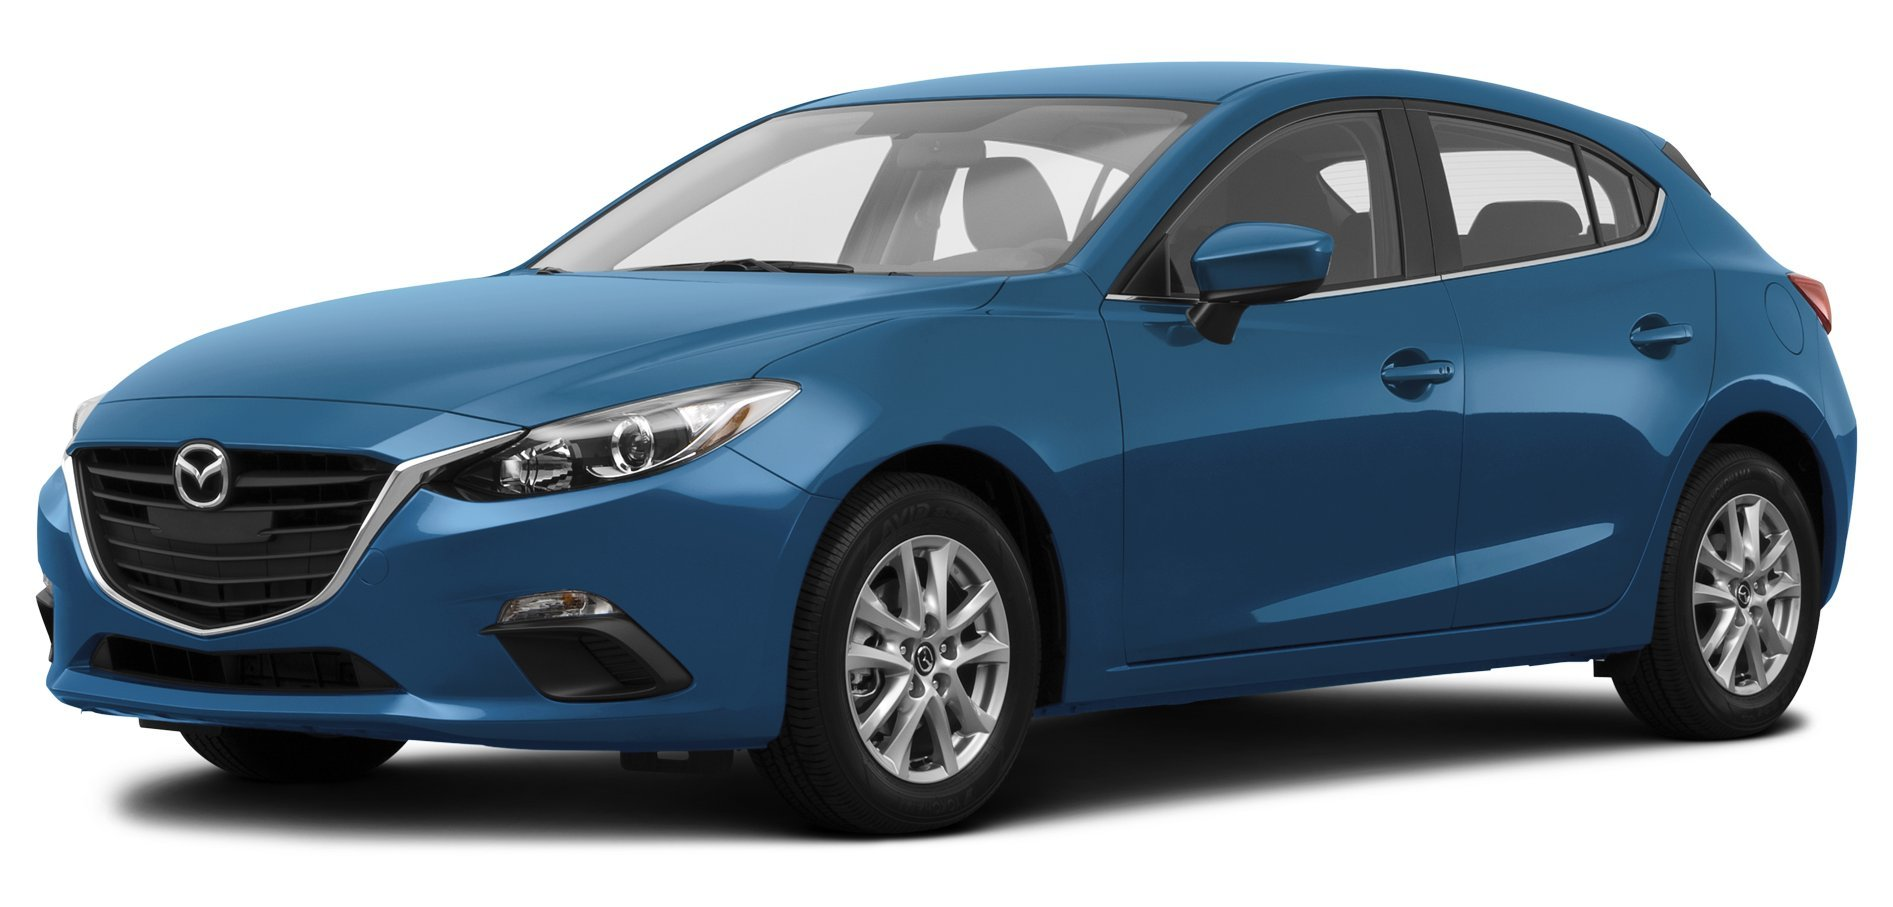 ... 2014 Mazda 3 i Touring, 5-Door Hatchback Manual Transmission ...